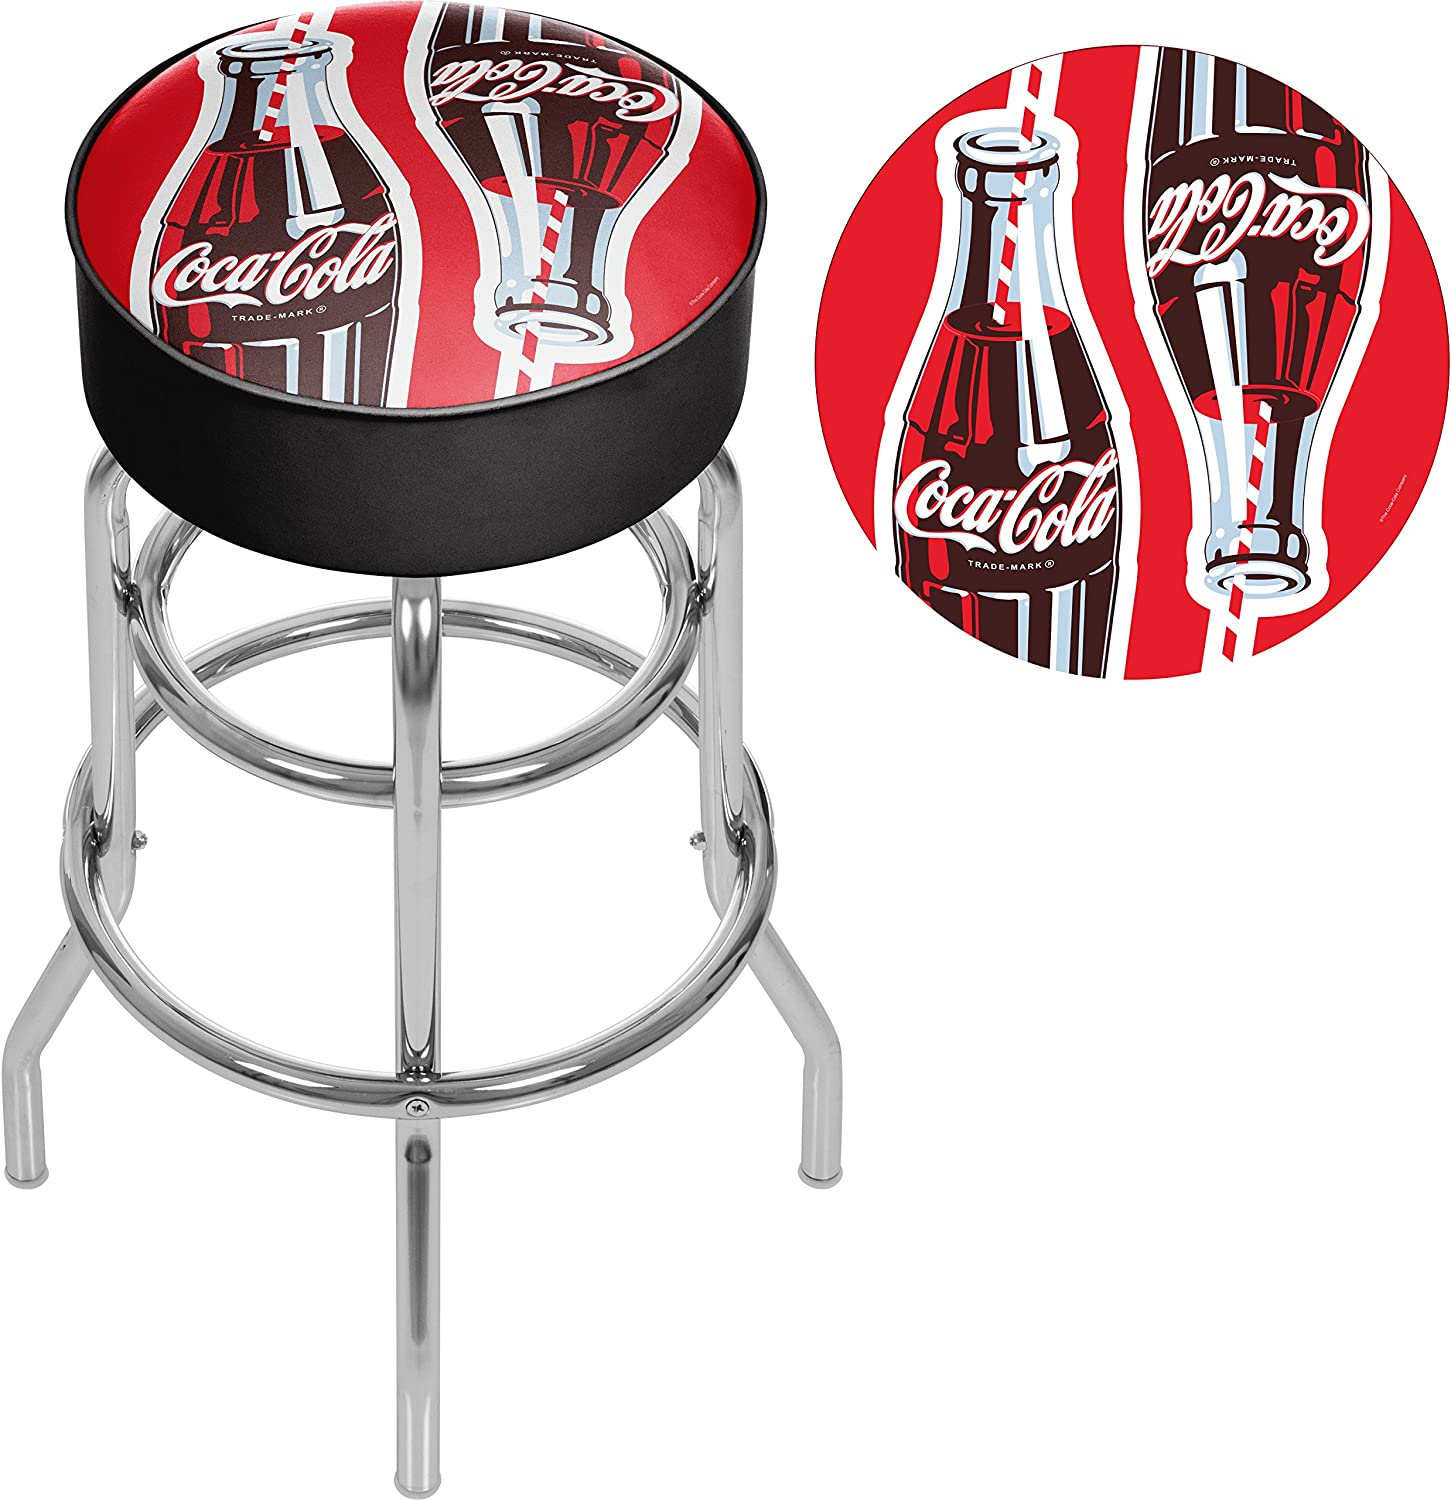 Trademark Gameroom Coke Chrome bar Stool with Swivel Coca-Cola Twin Bottles with Straw Bottle Art